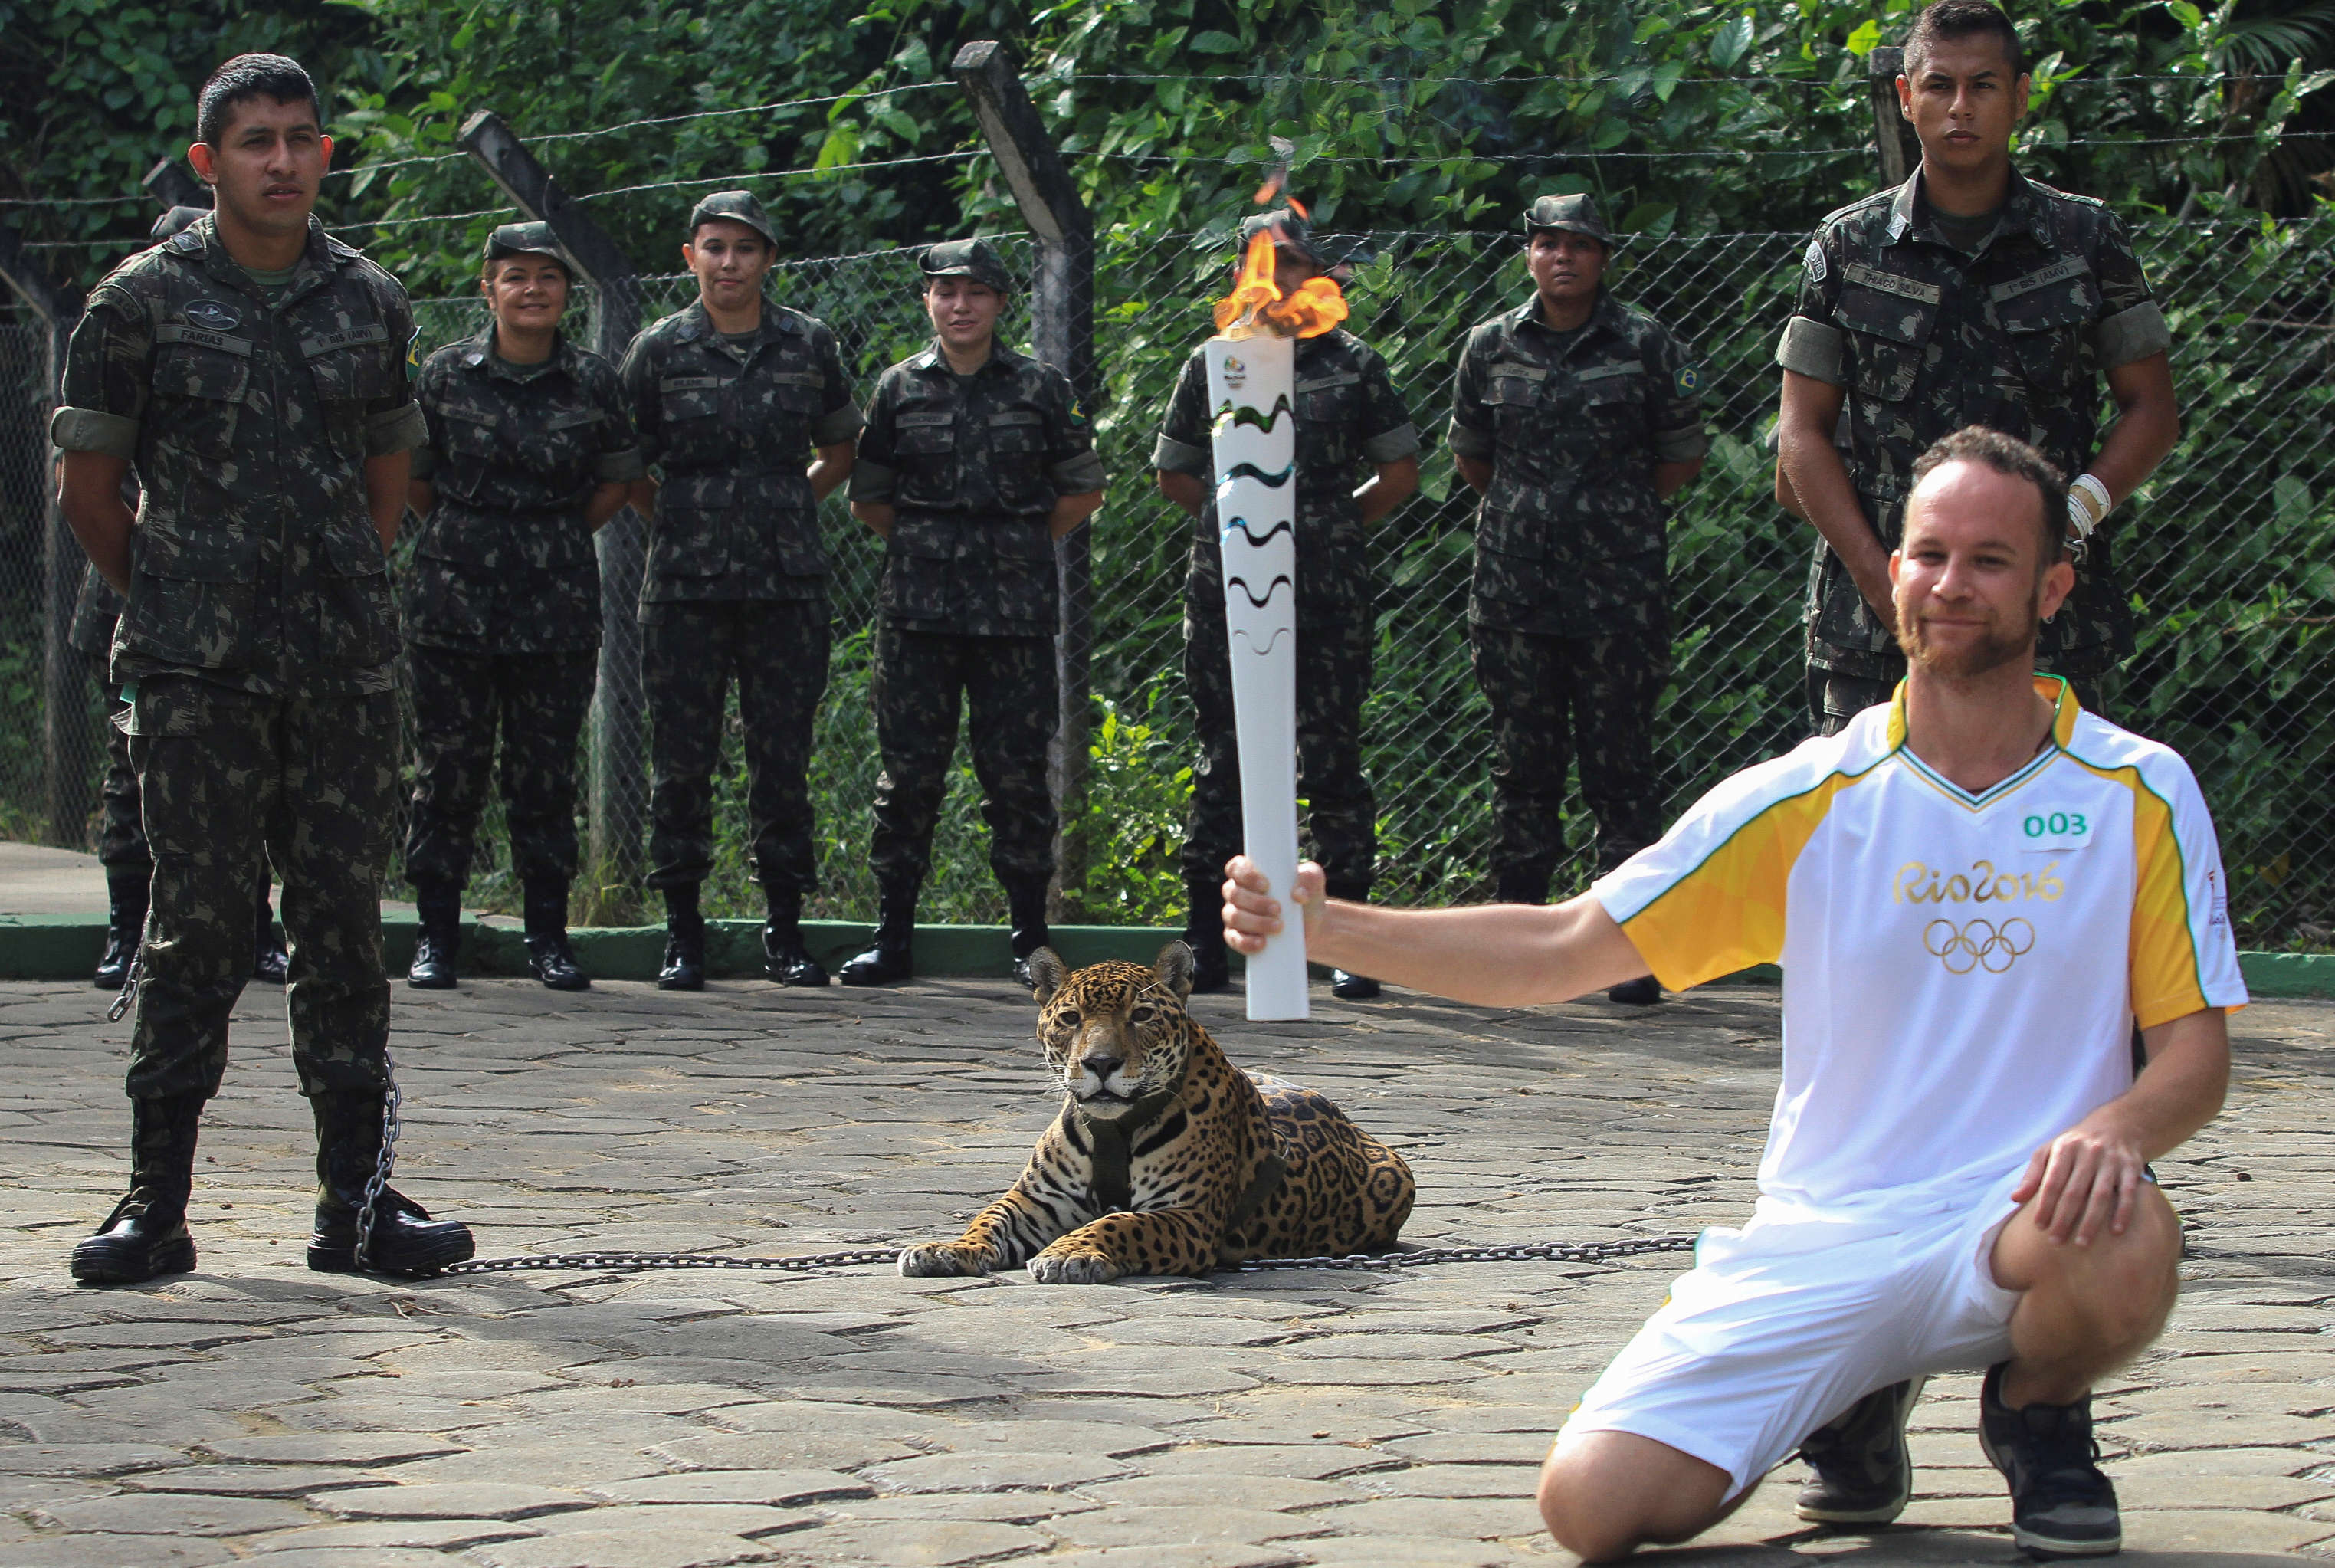 Brazilian physiotherapist Igor Simoes Andrade poses for picture next to jaguar Juma as he takes part in the Olympic Flame torch relay in Manaus